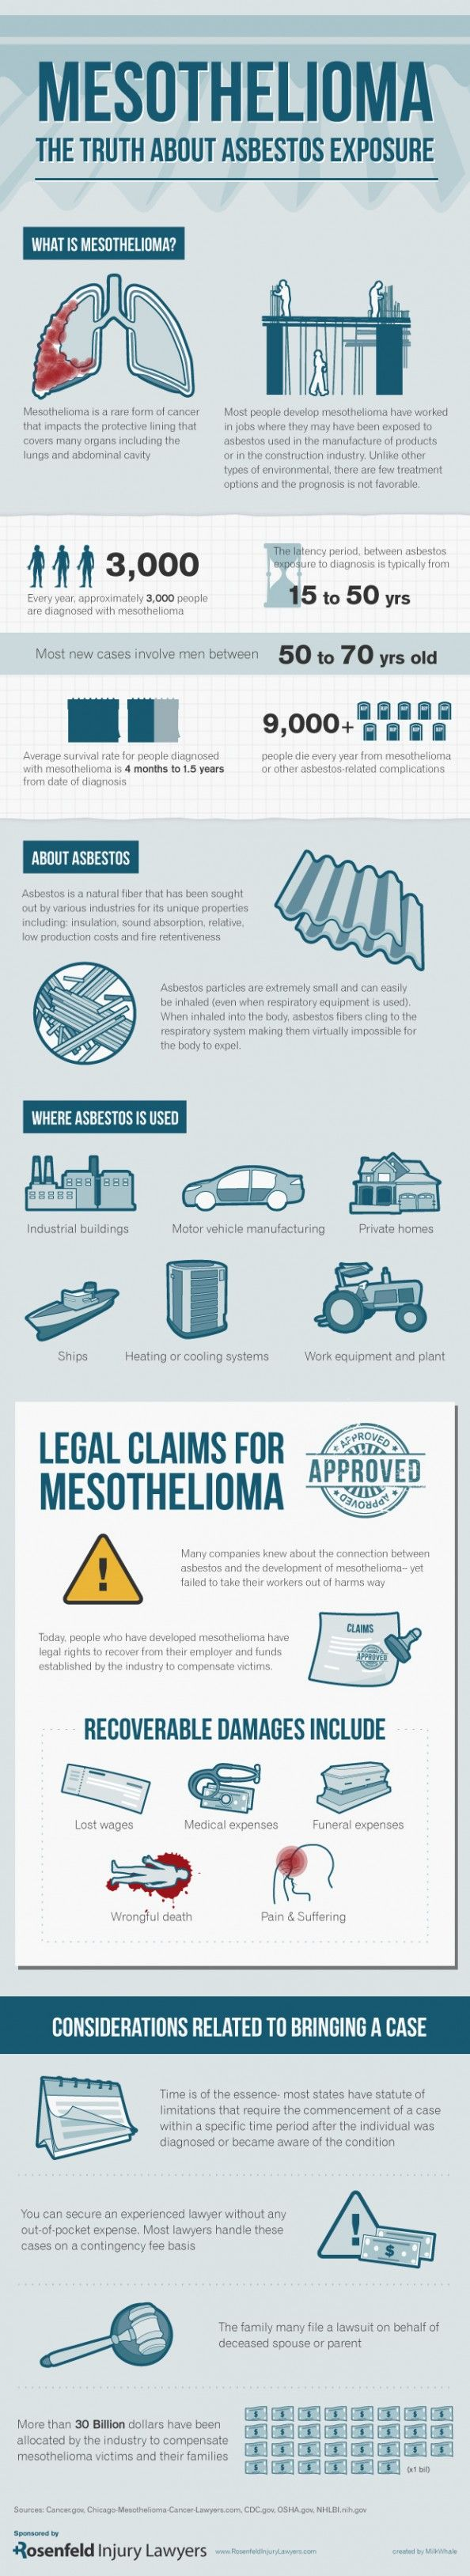 Mesothelioma: The Truth About Asbestos Exposure